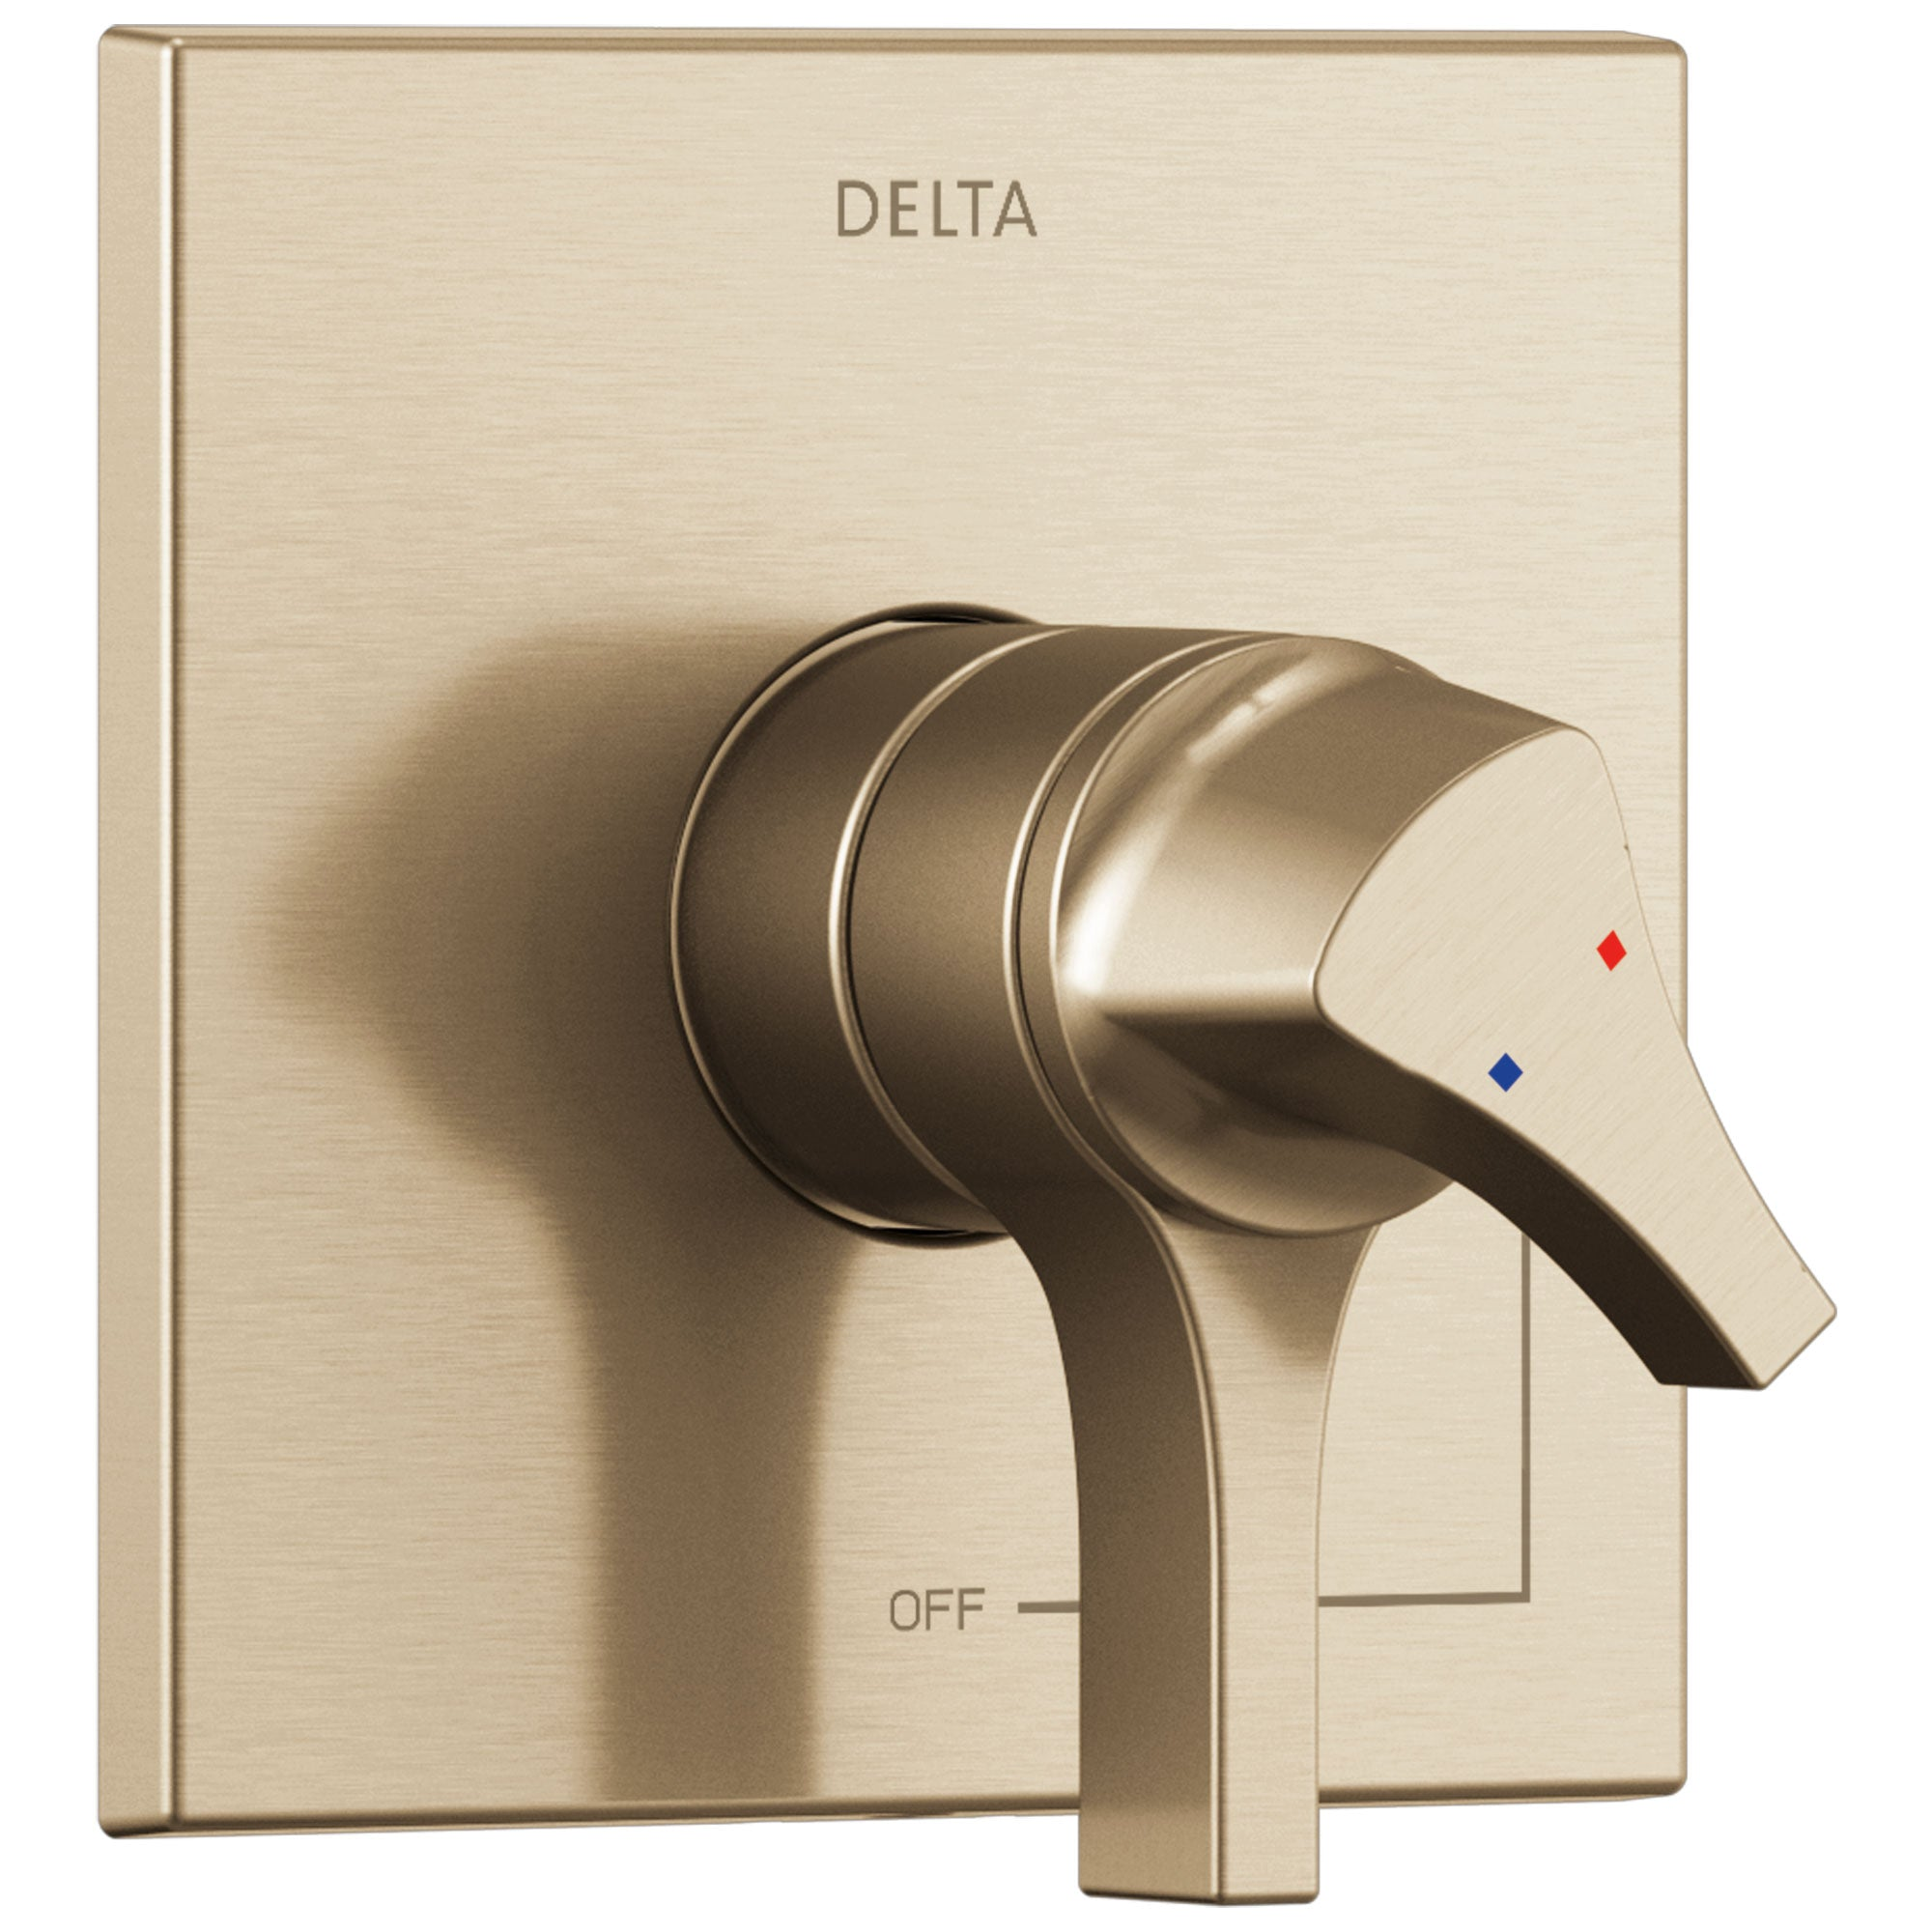 Delta Zura Champagne Bronze Finish Monitor 17 Series Shower Faucet Control Only Includes Cartridge, Handles, and Valve without Stops D3407V